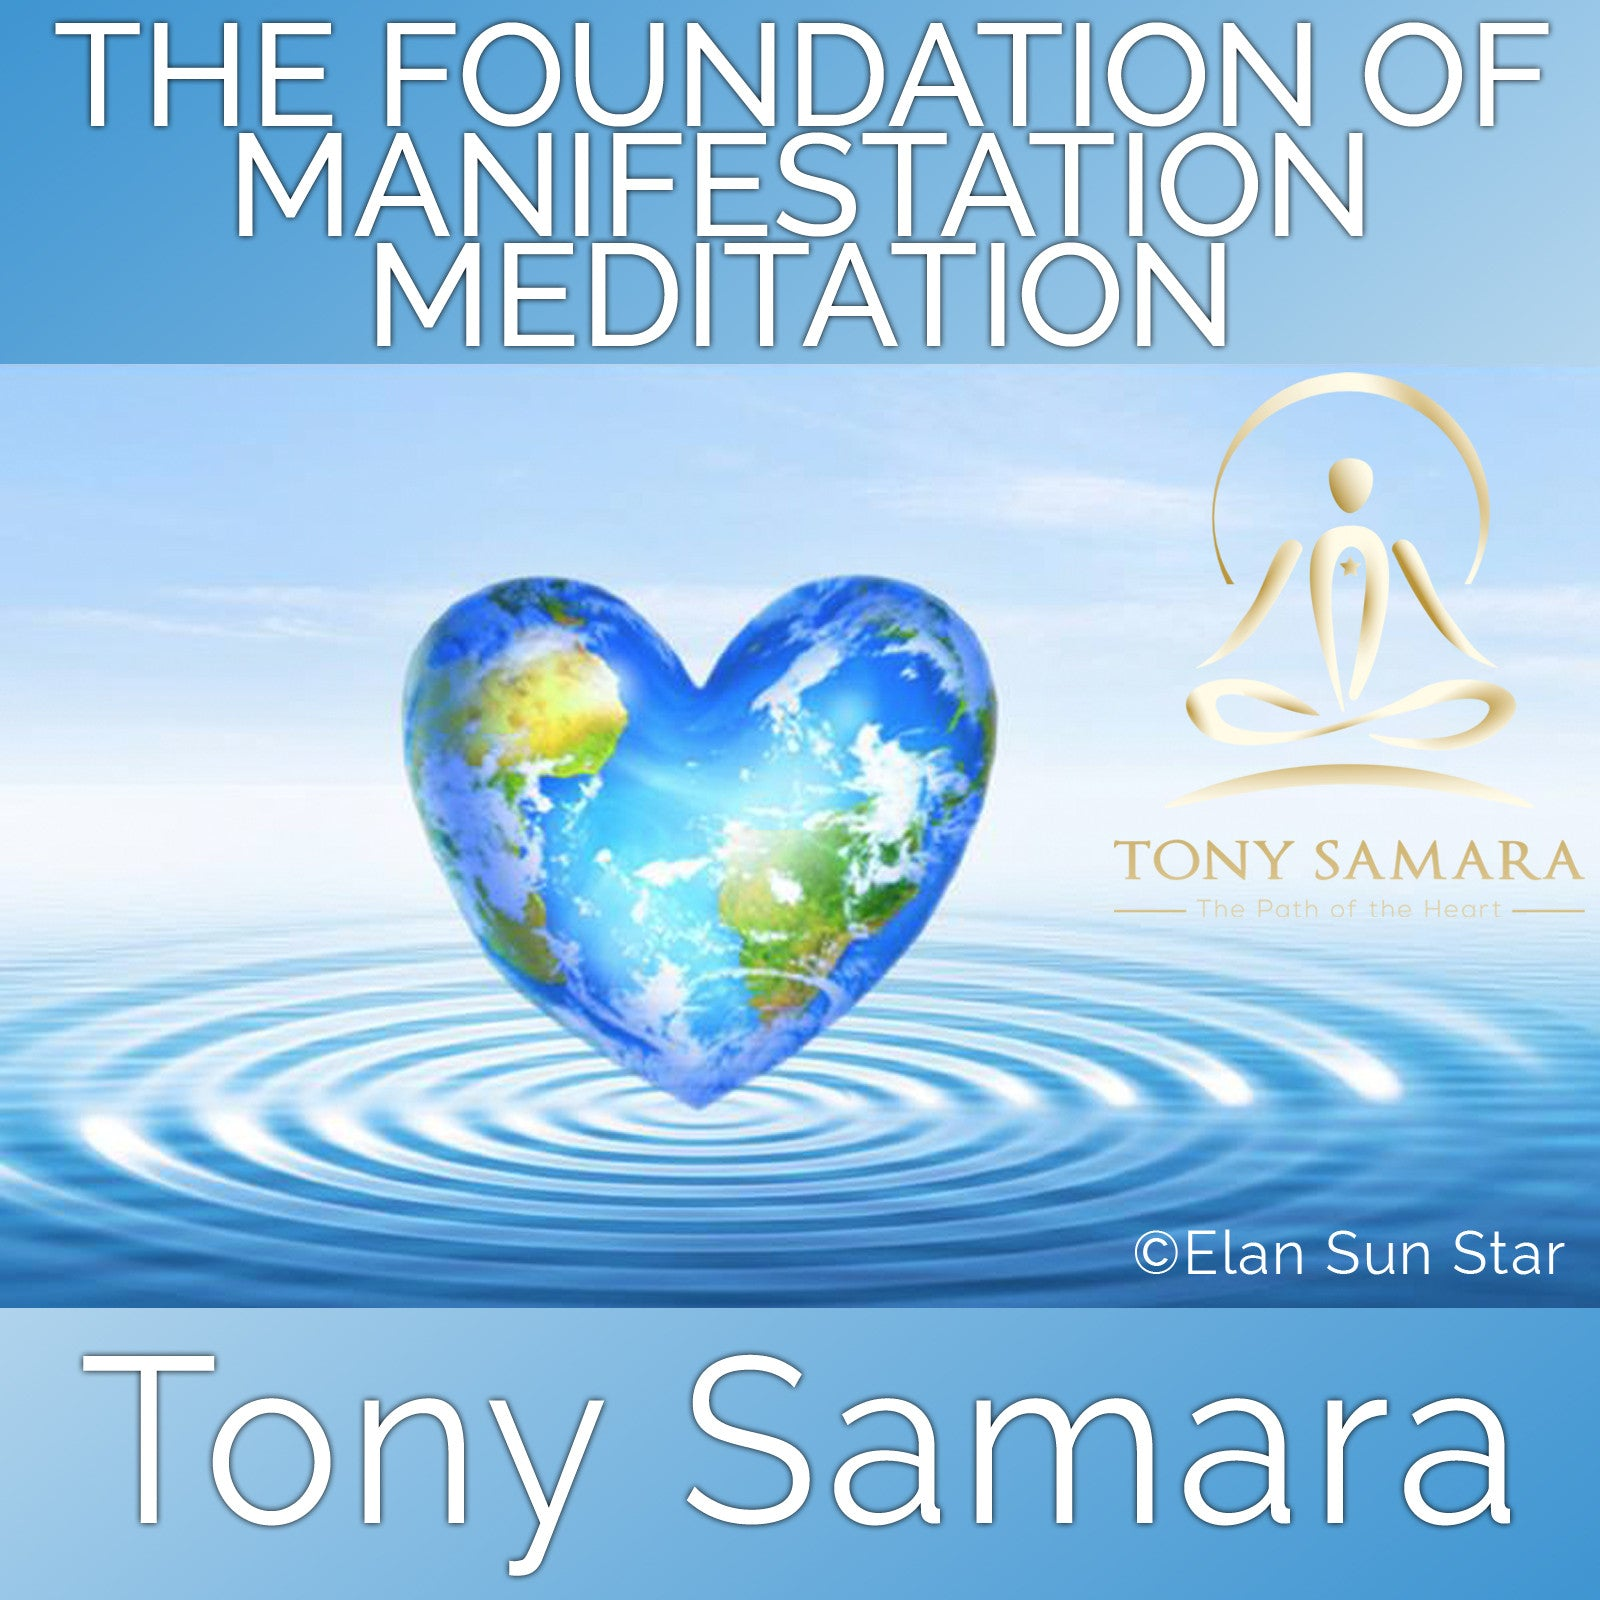 The Foundation of Manifestation Meditation (MP3 Audio Download) - Tony Samara Meditation